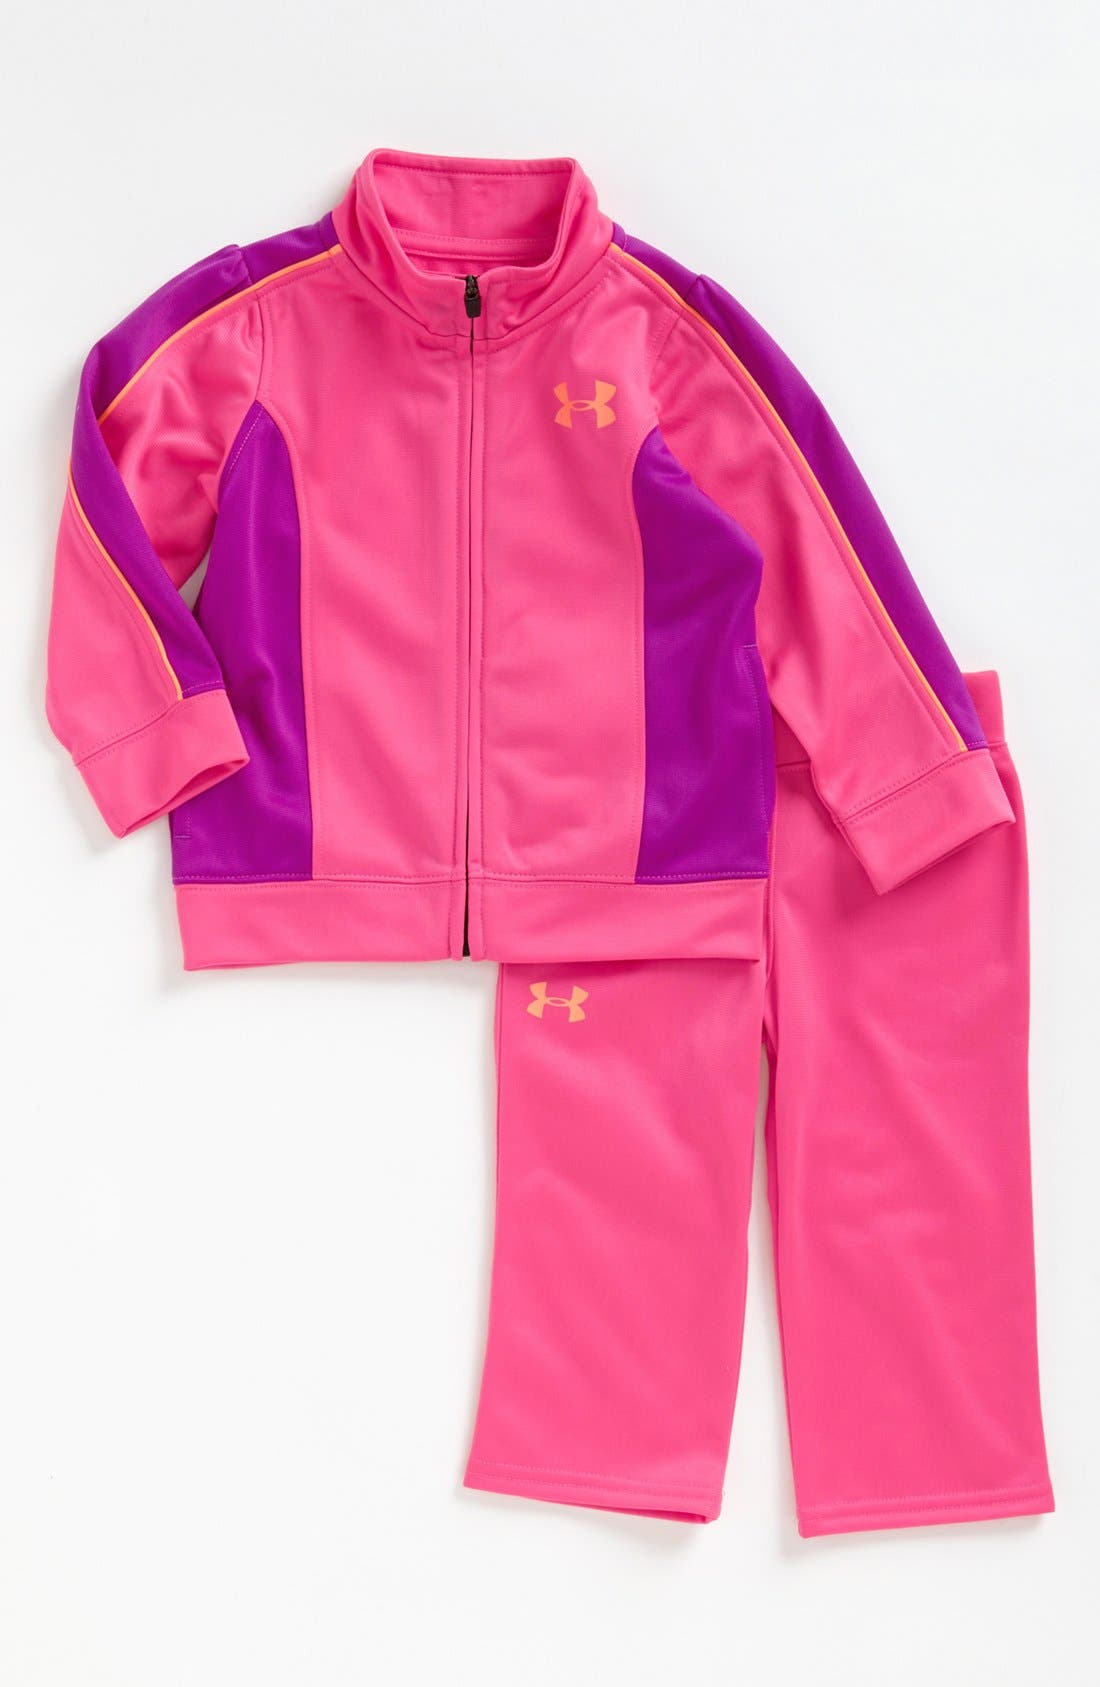 Alternate Image 1 Selected - Under Armour Jacket & Pants (Baby Girls) (Online Only)